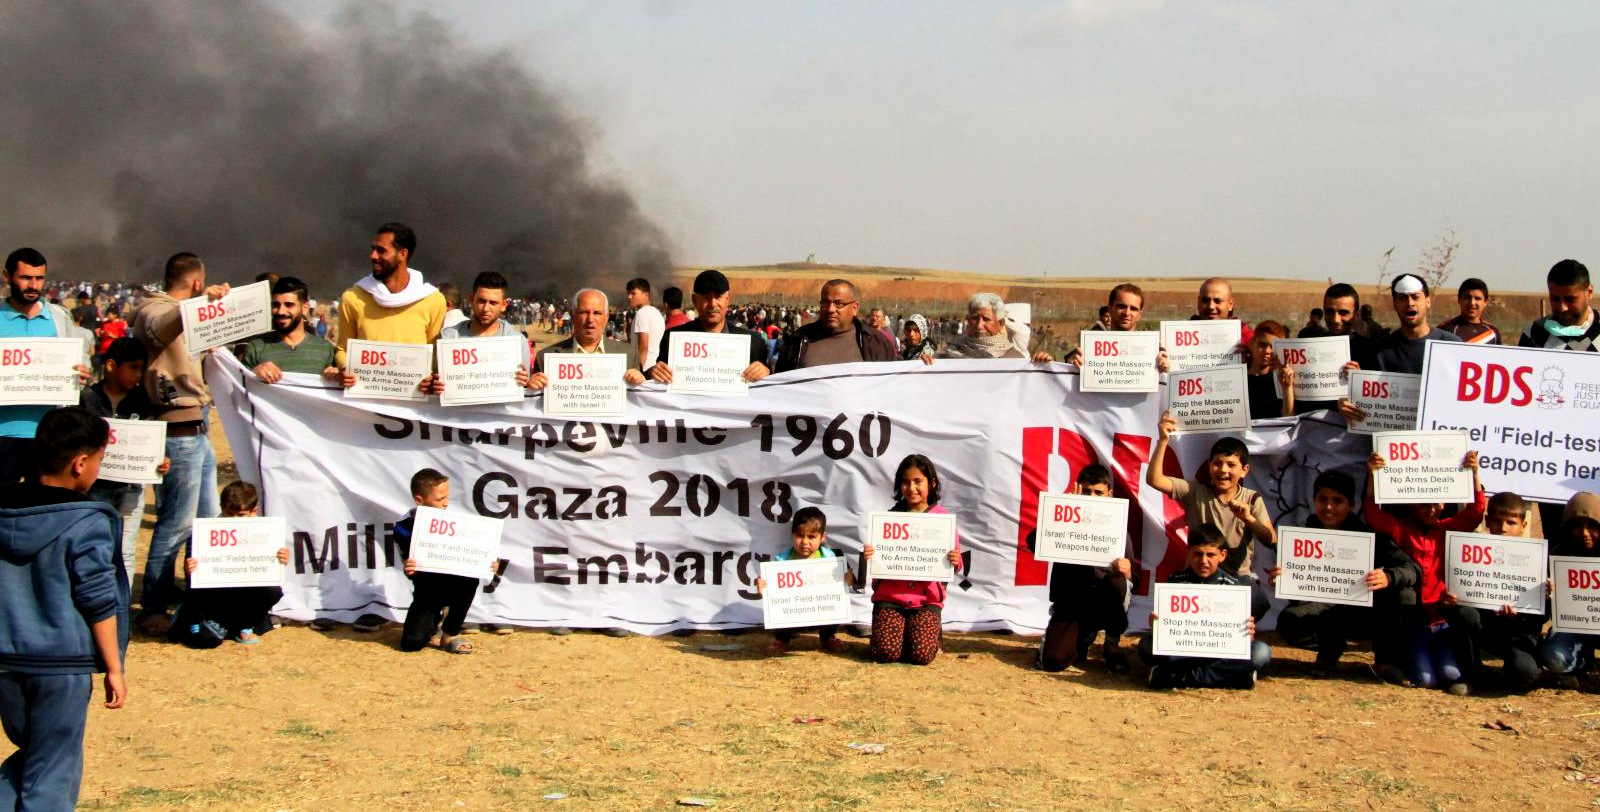 Gazans See Boycott, Divestment and Sanctions Movement As Last Hope for International Justice